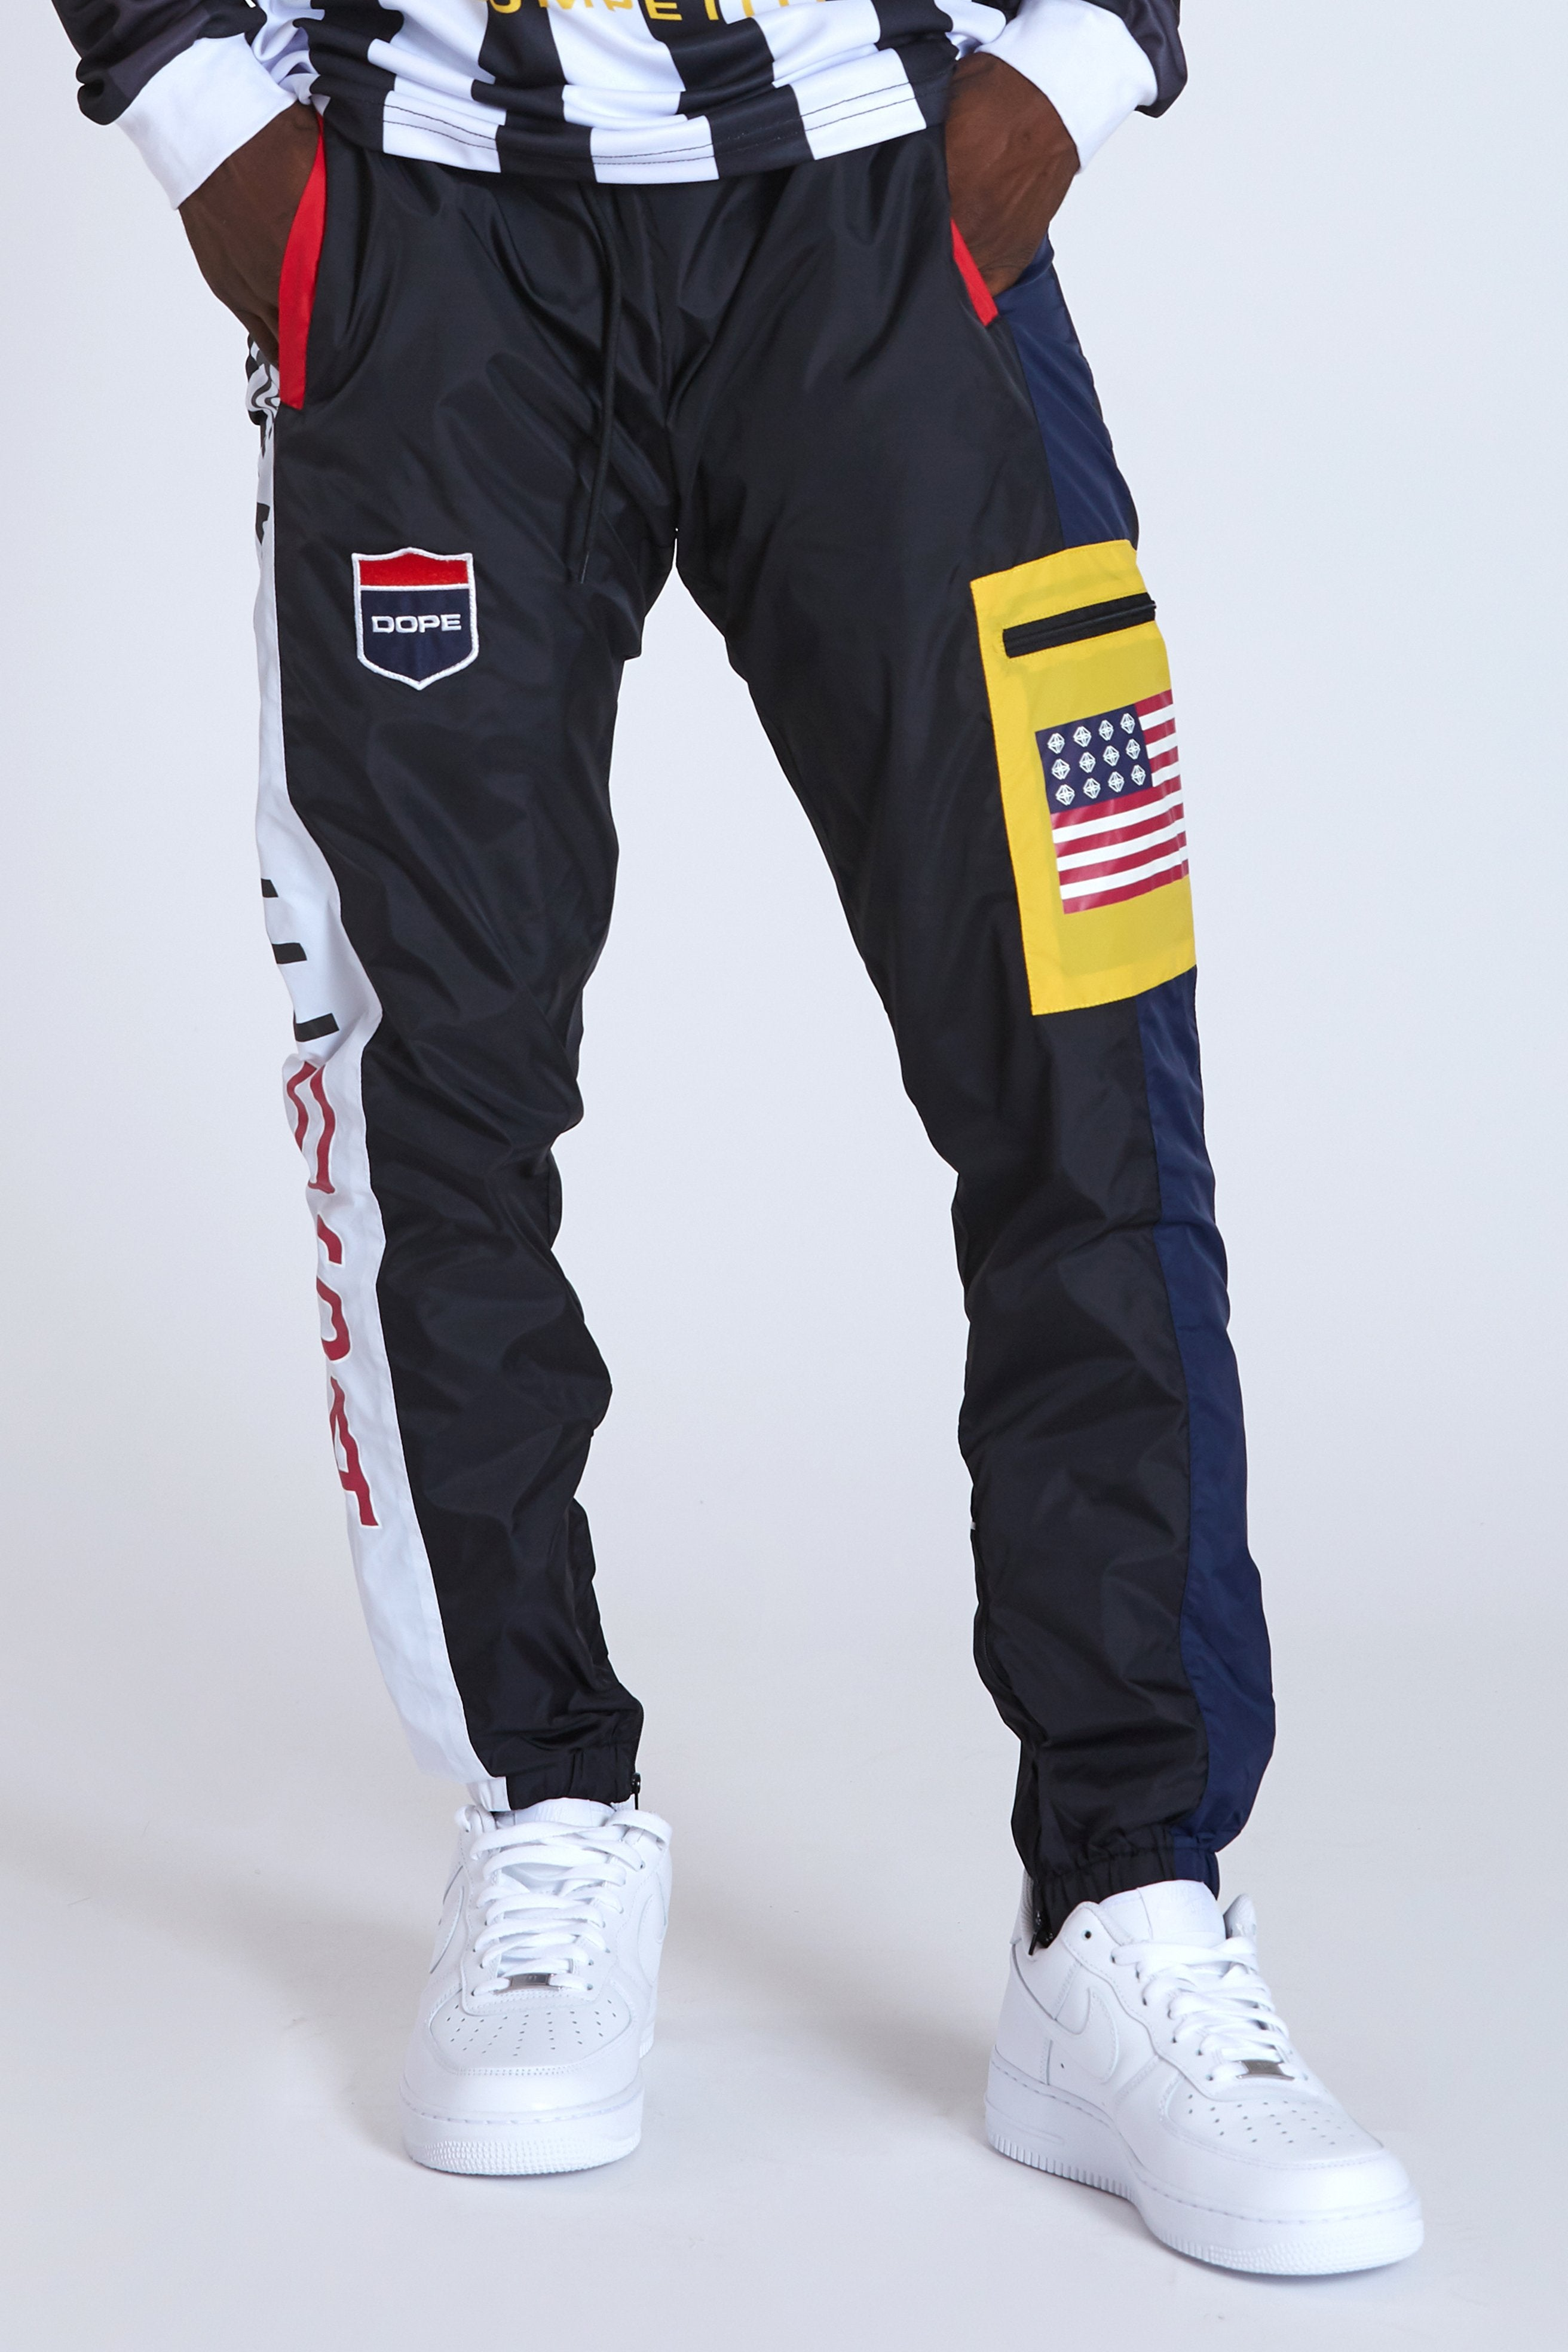 DOPE Cargo Sport Nylon windbreaker jogger pants #Black